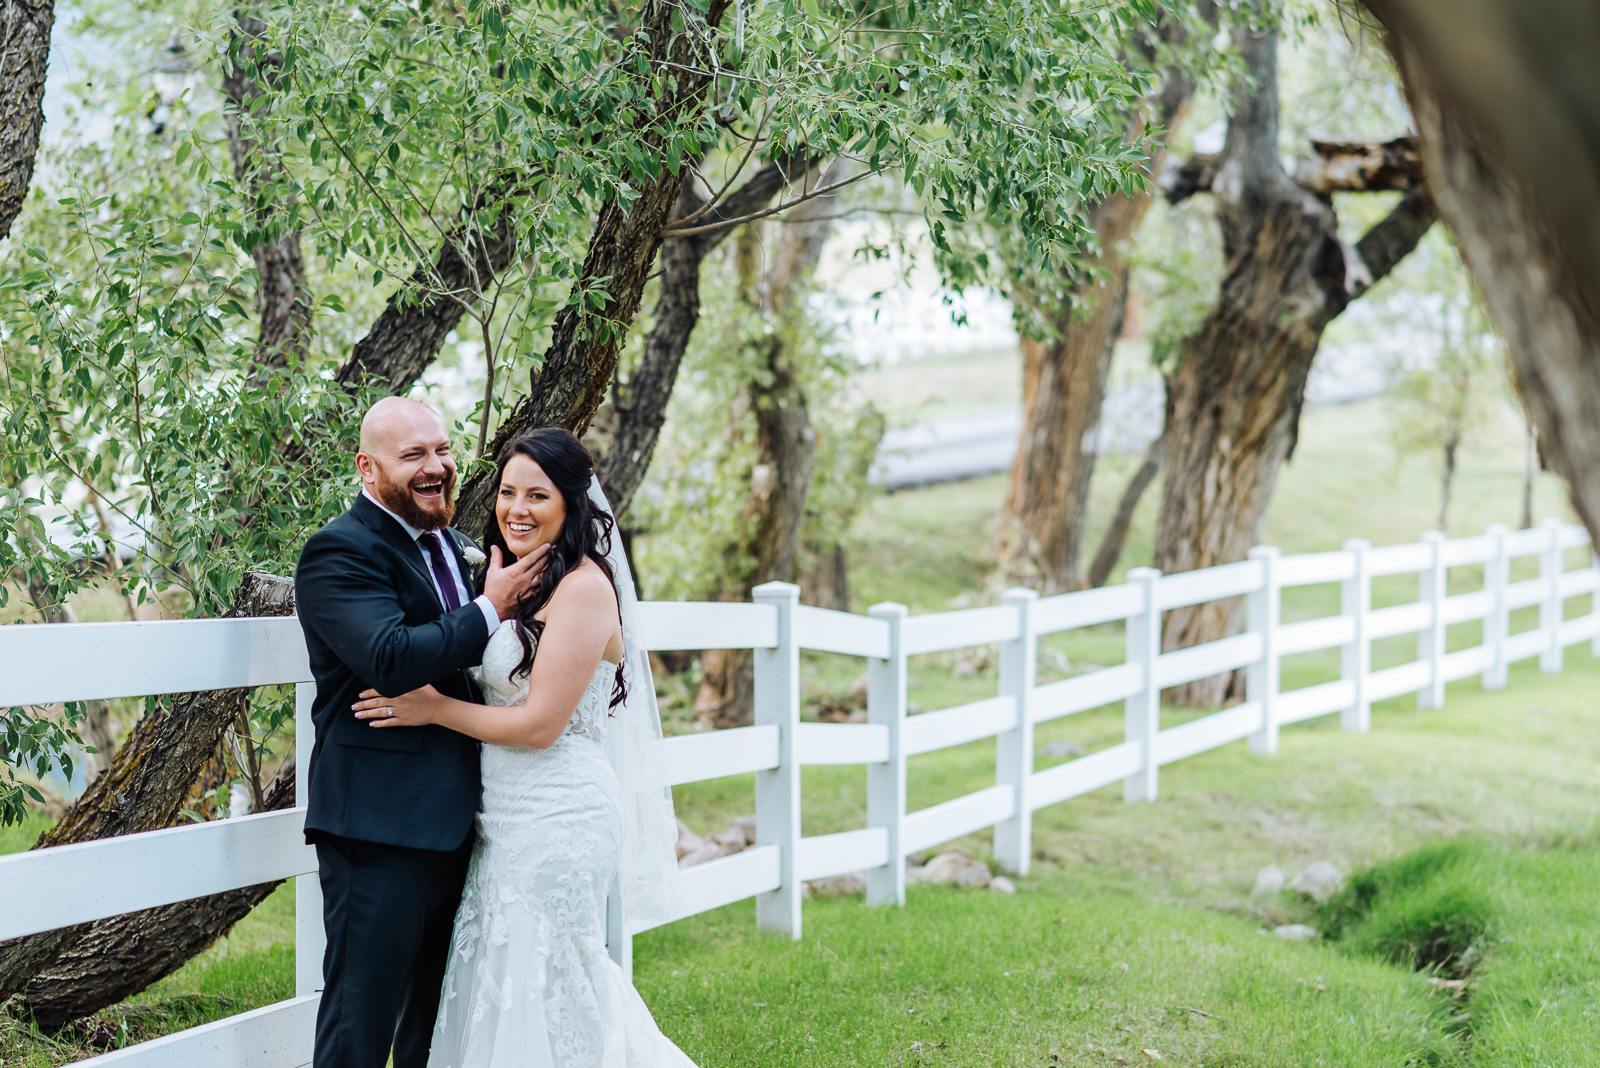 A Sunny Day with Emily & Drew | Crooked Willow Farms Wedding Photos